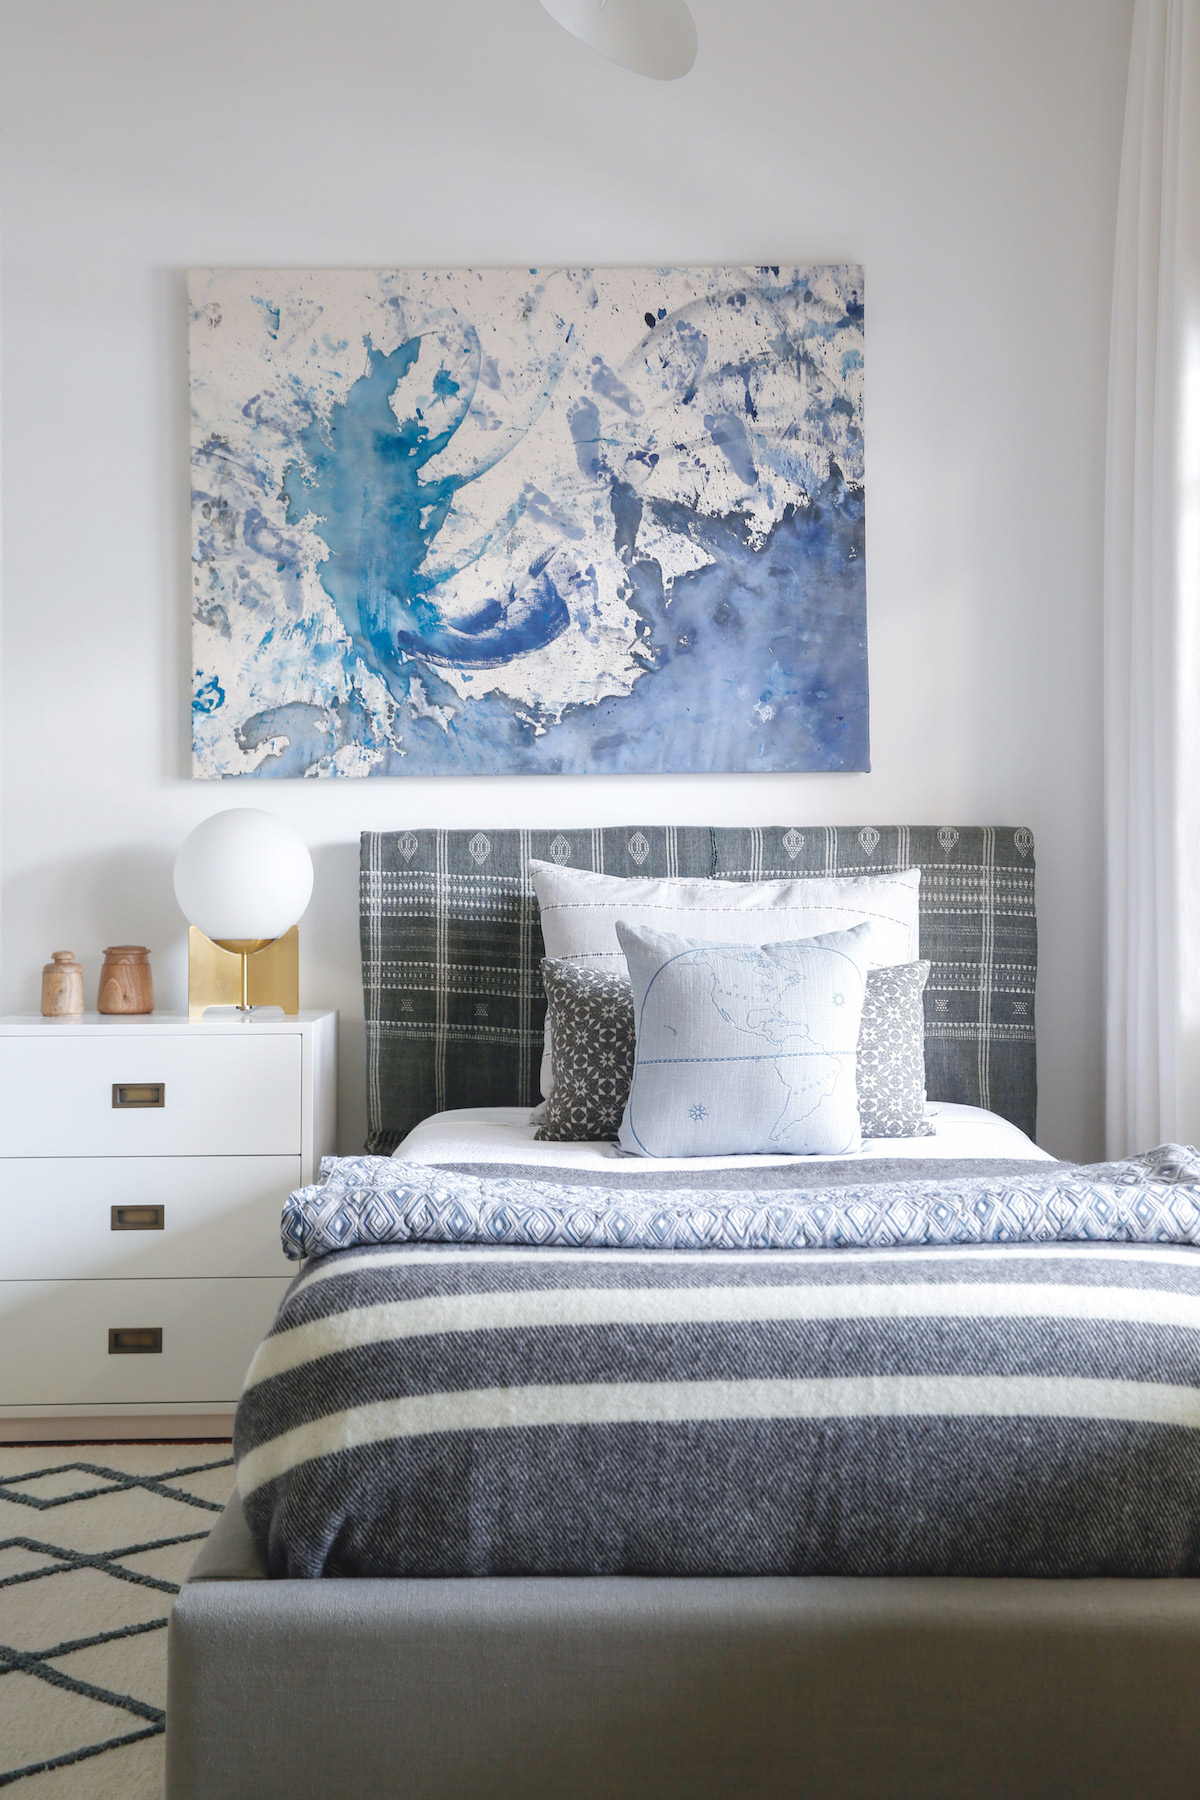 Sacramento Street Fall 2017 One Room Challenge. Cozy modern boy's bedroom with blue art and gray bedding.